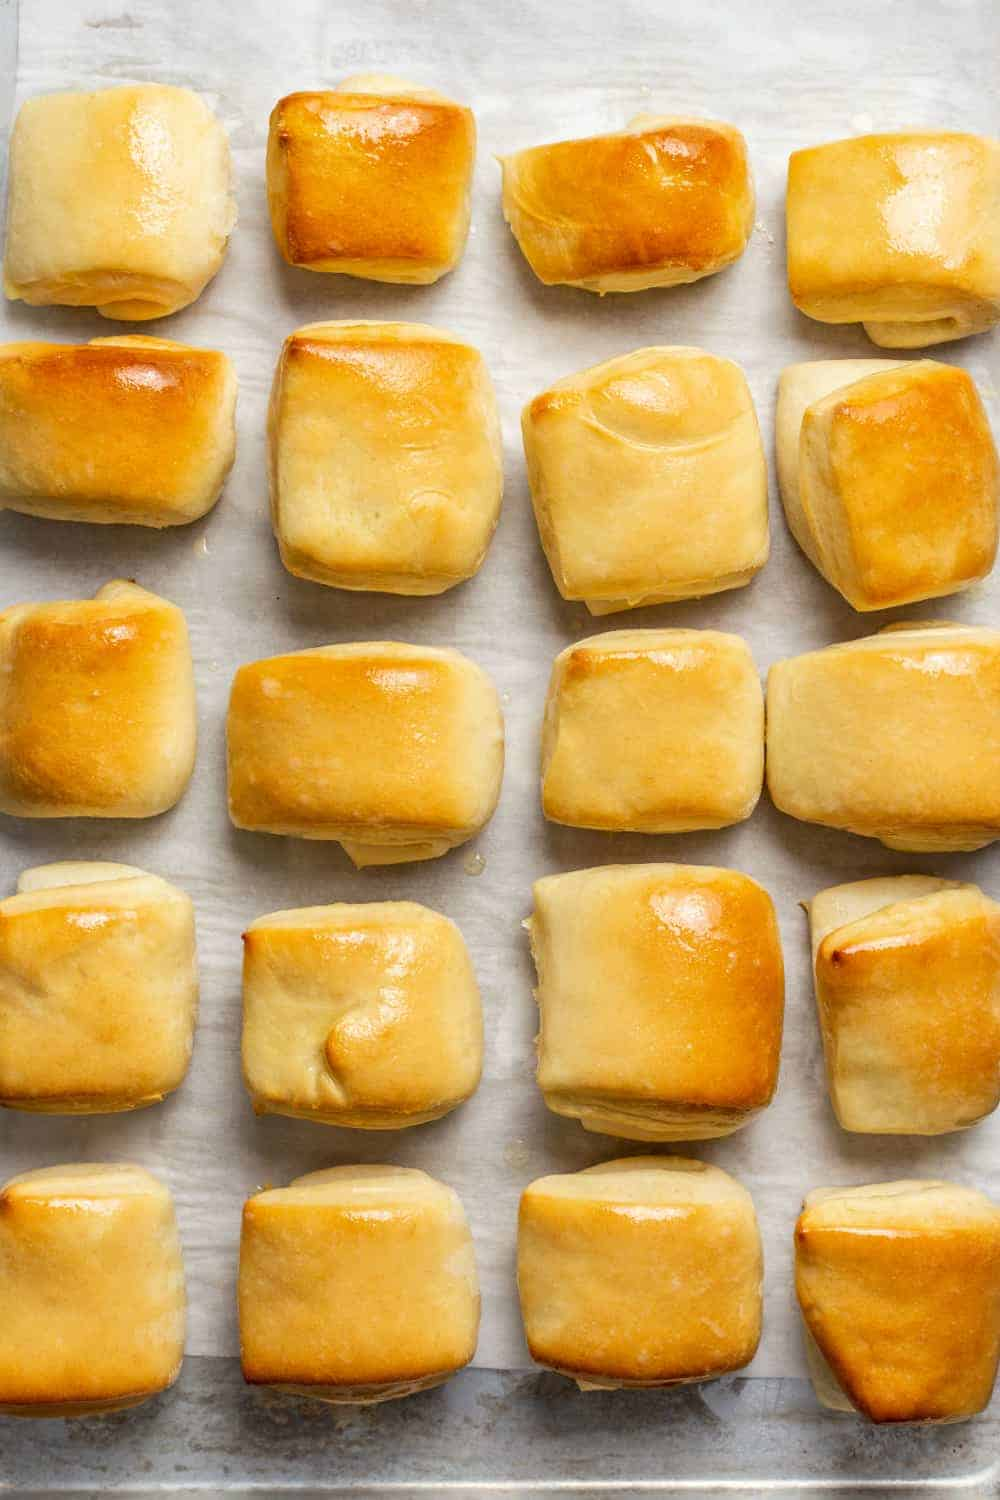 Baked parker house rolls on a parchment-lined baking sheet